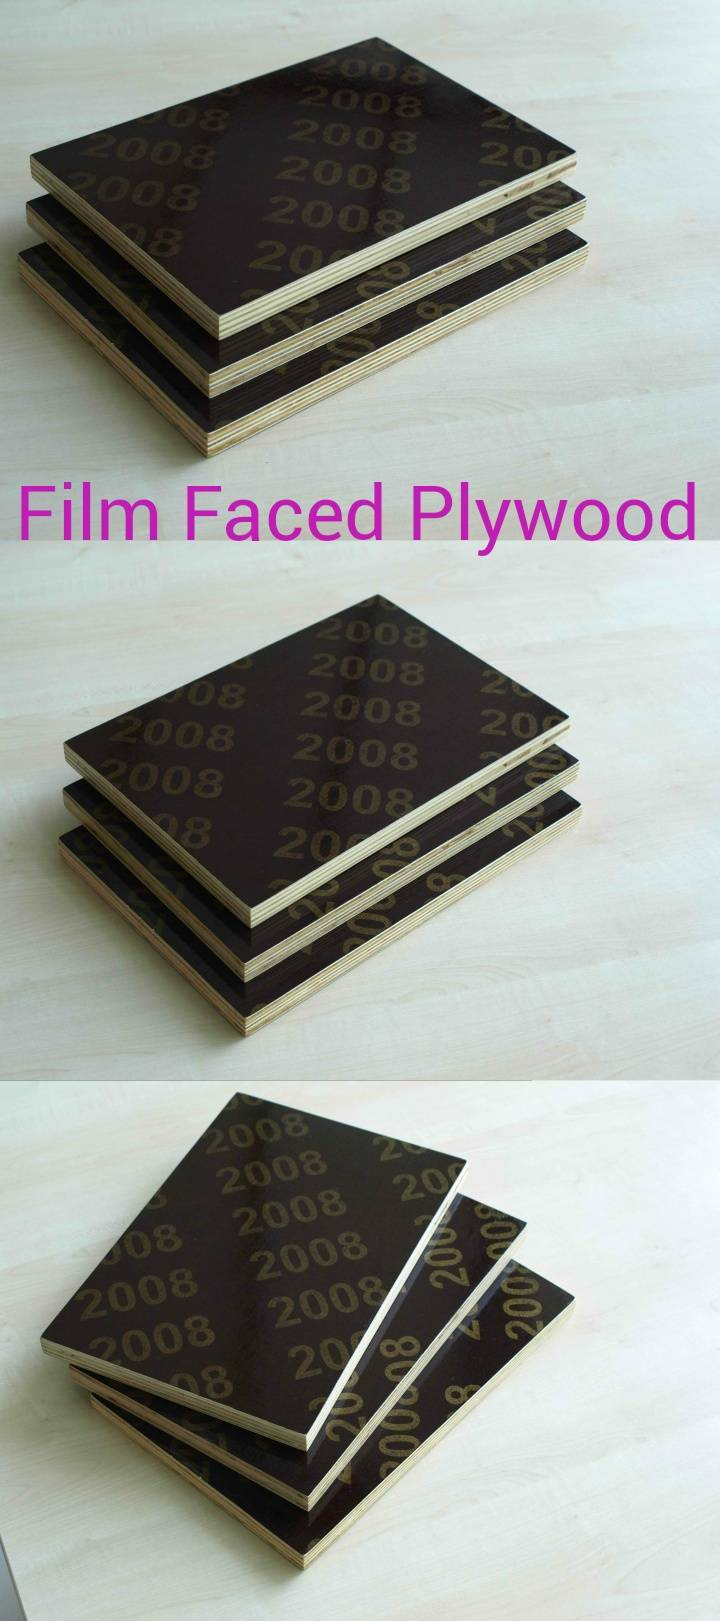 18mm film faced plywood with melamine glue for construction use